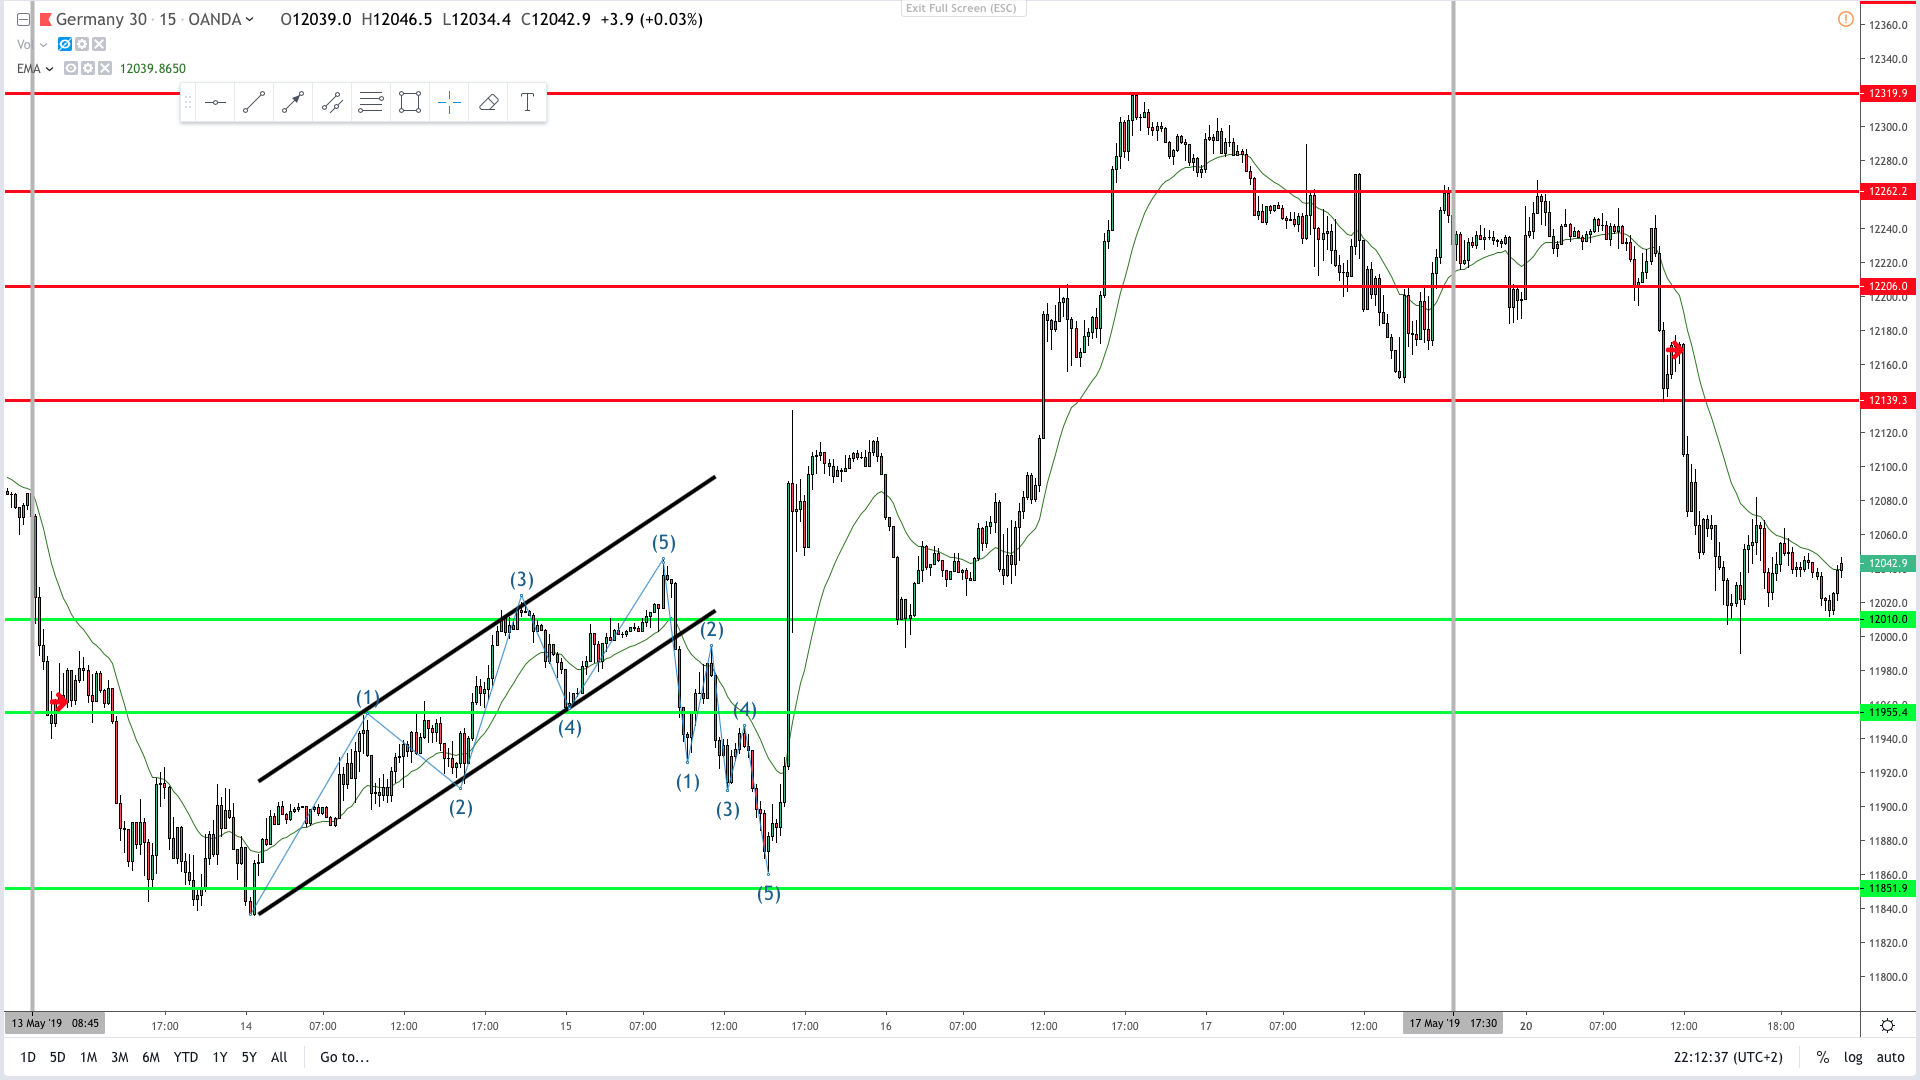 Dax price action